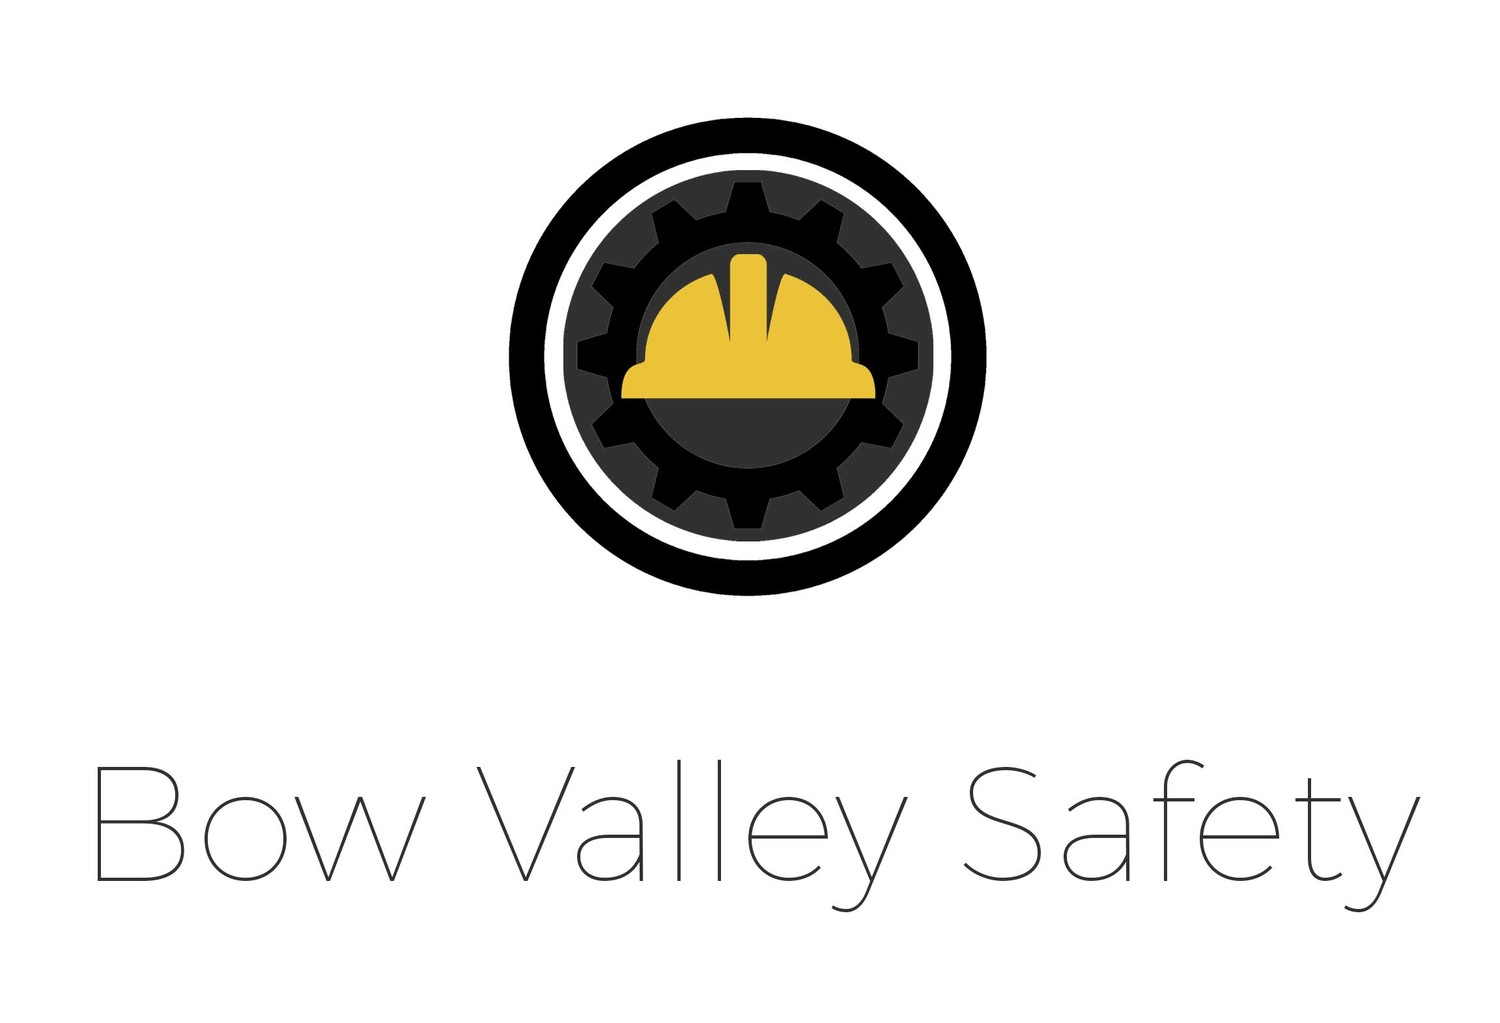 Bow Valley Safety